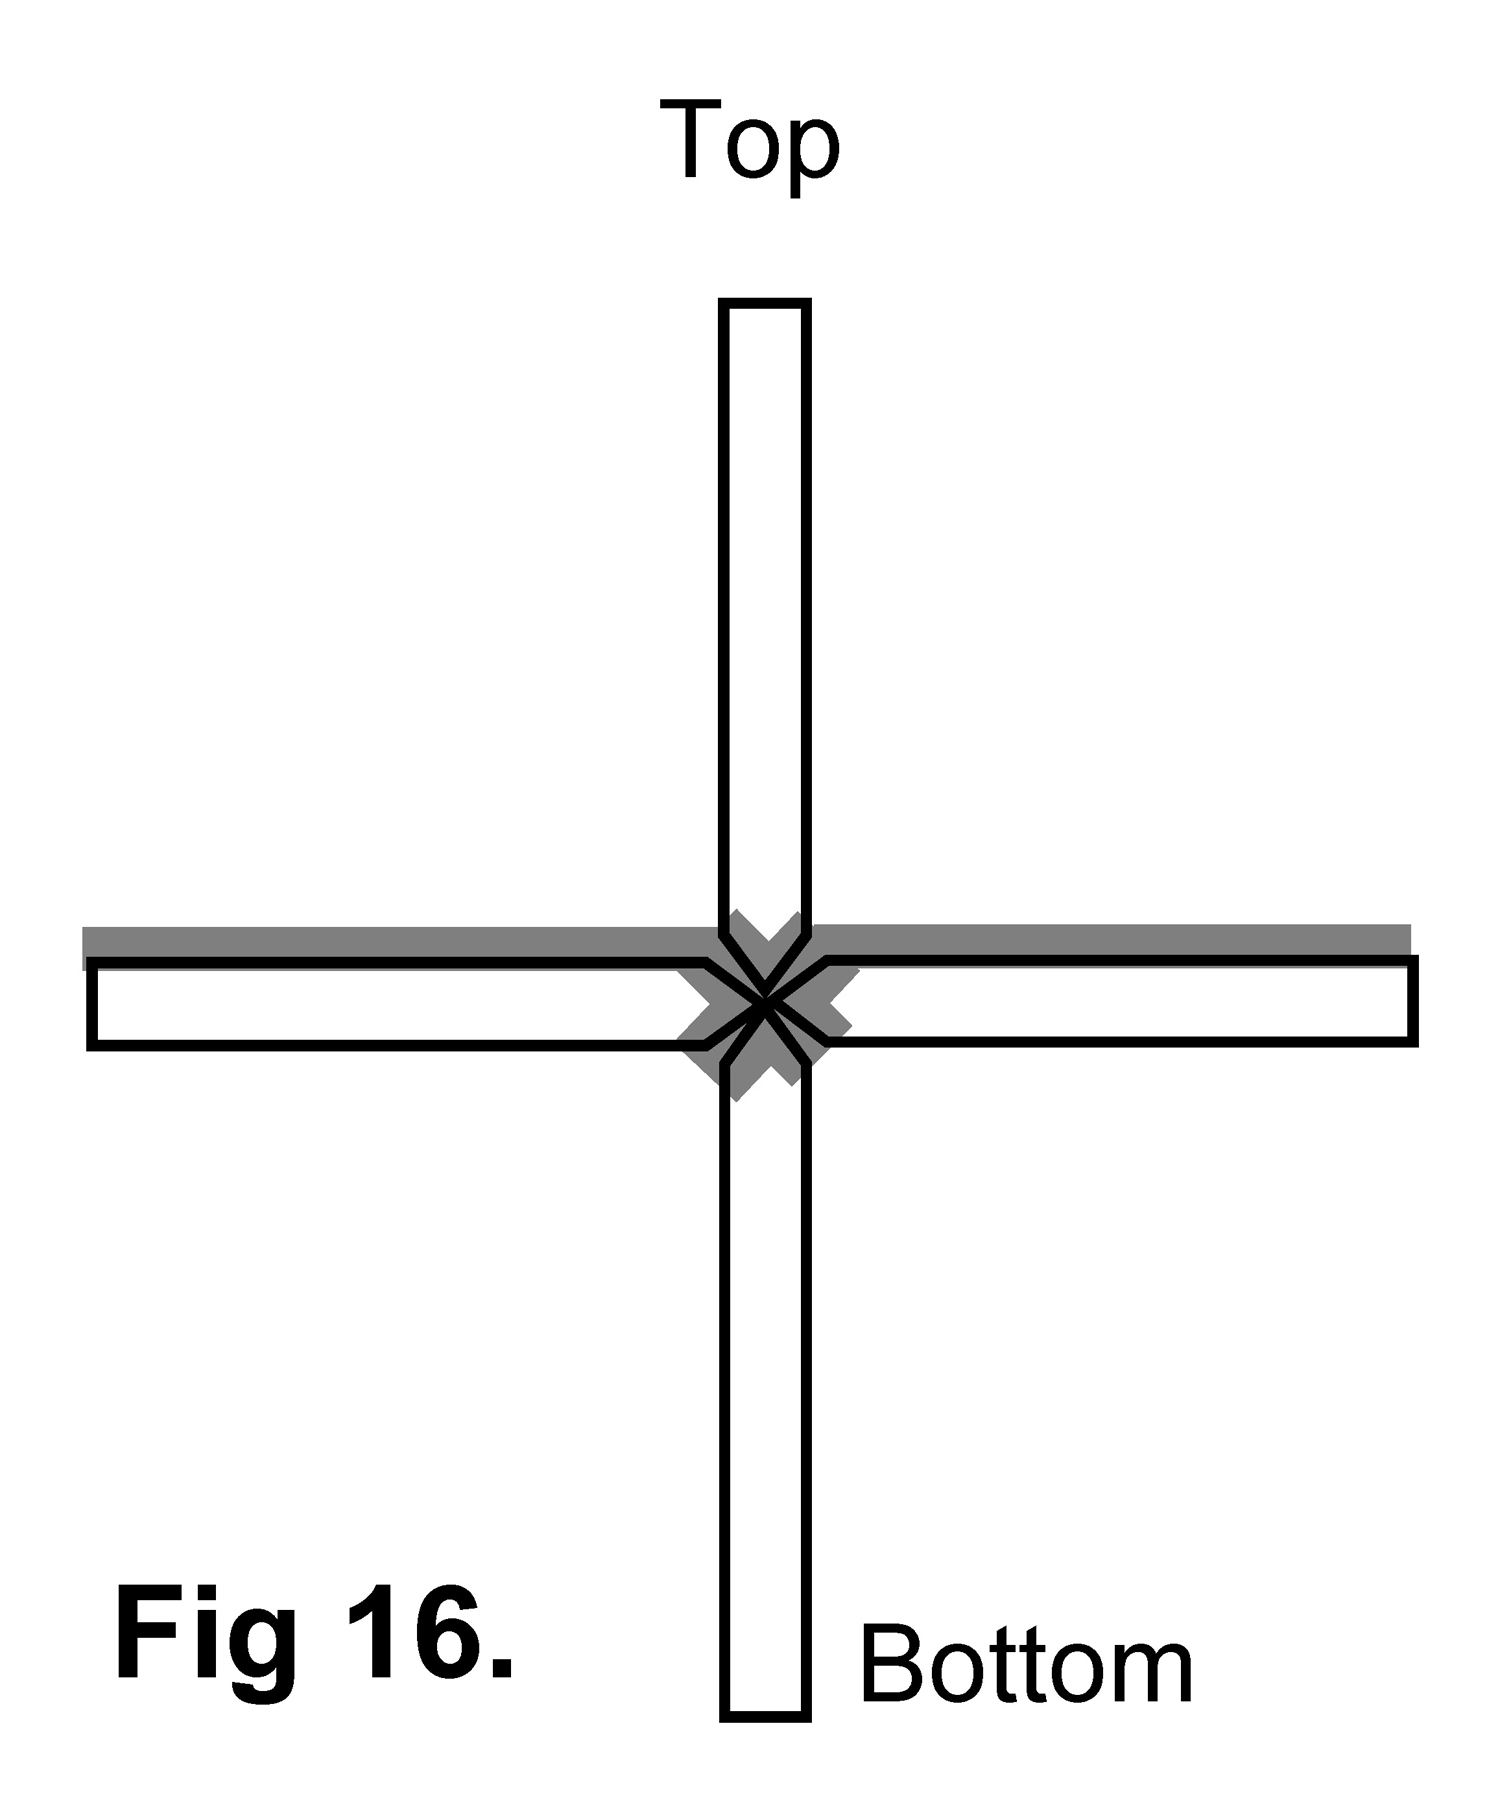 poly-installation-csy10-11-for-drawings-fig-16ready.jpg